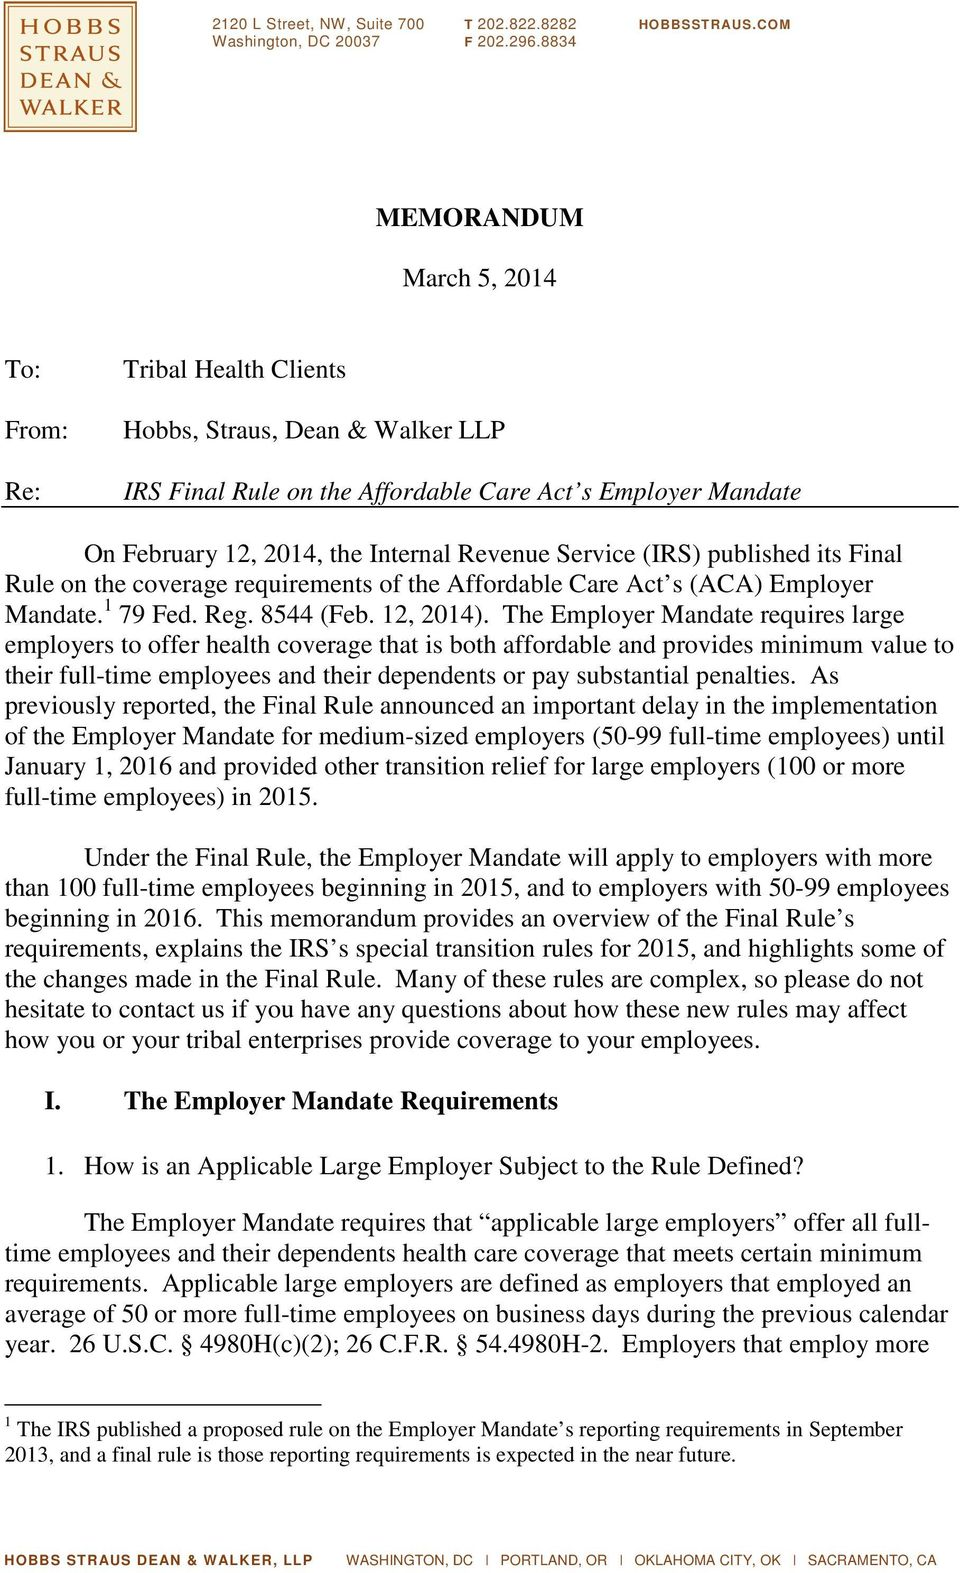 (IRS) published its Final Rule on the coverage requirements of the Affordable Care Act s (ACA) Employer Mandate. 1 79 Fed. Reg. 8544 (Feb. 12, 2014).